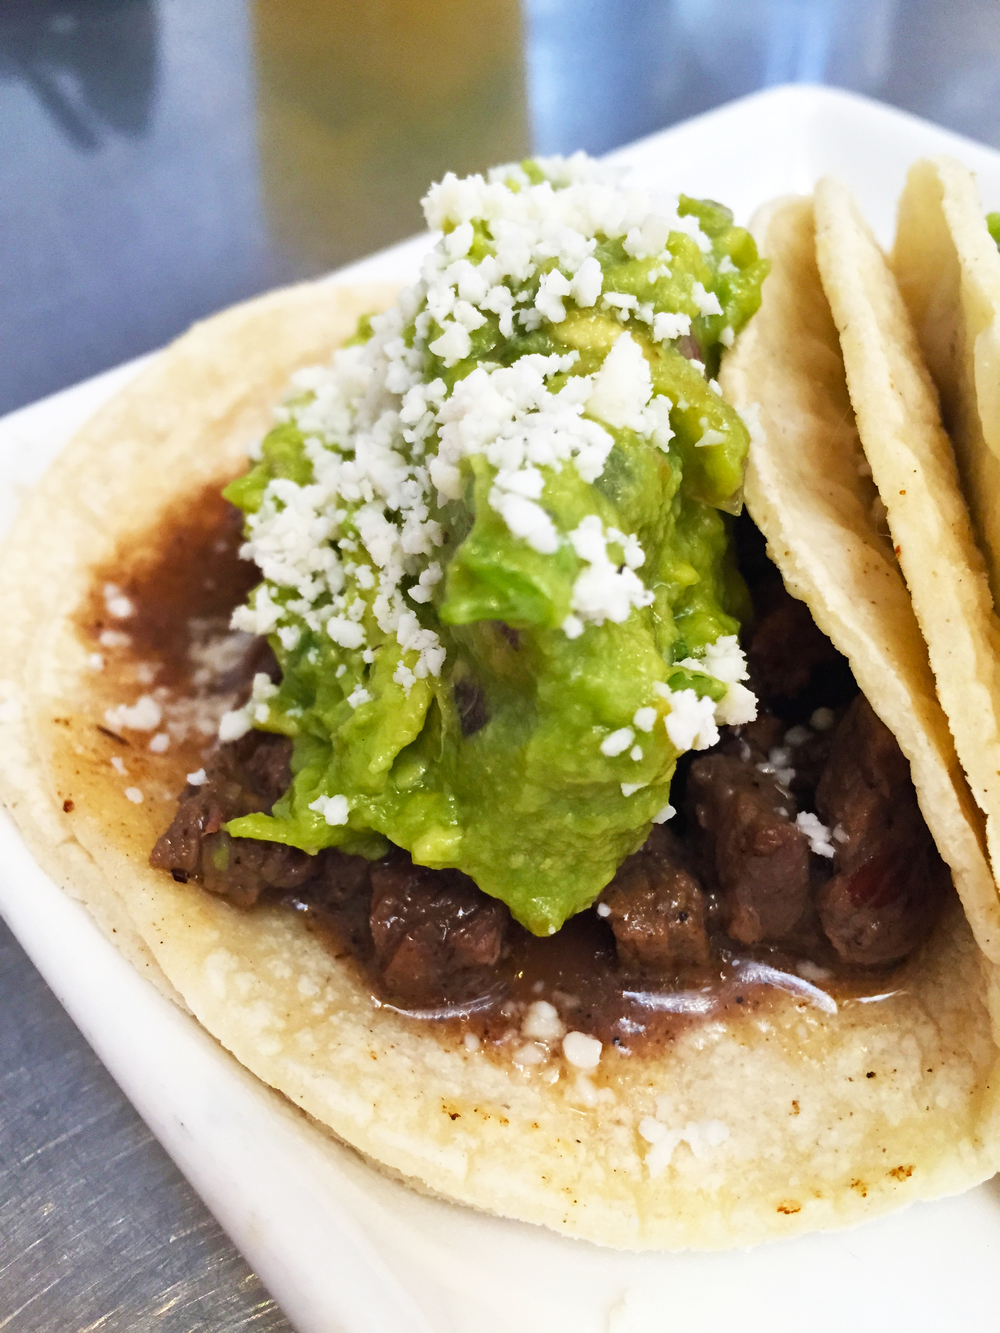 Signature Taco with marinated top sirloin steak, guacamole, and cotija cheese.